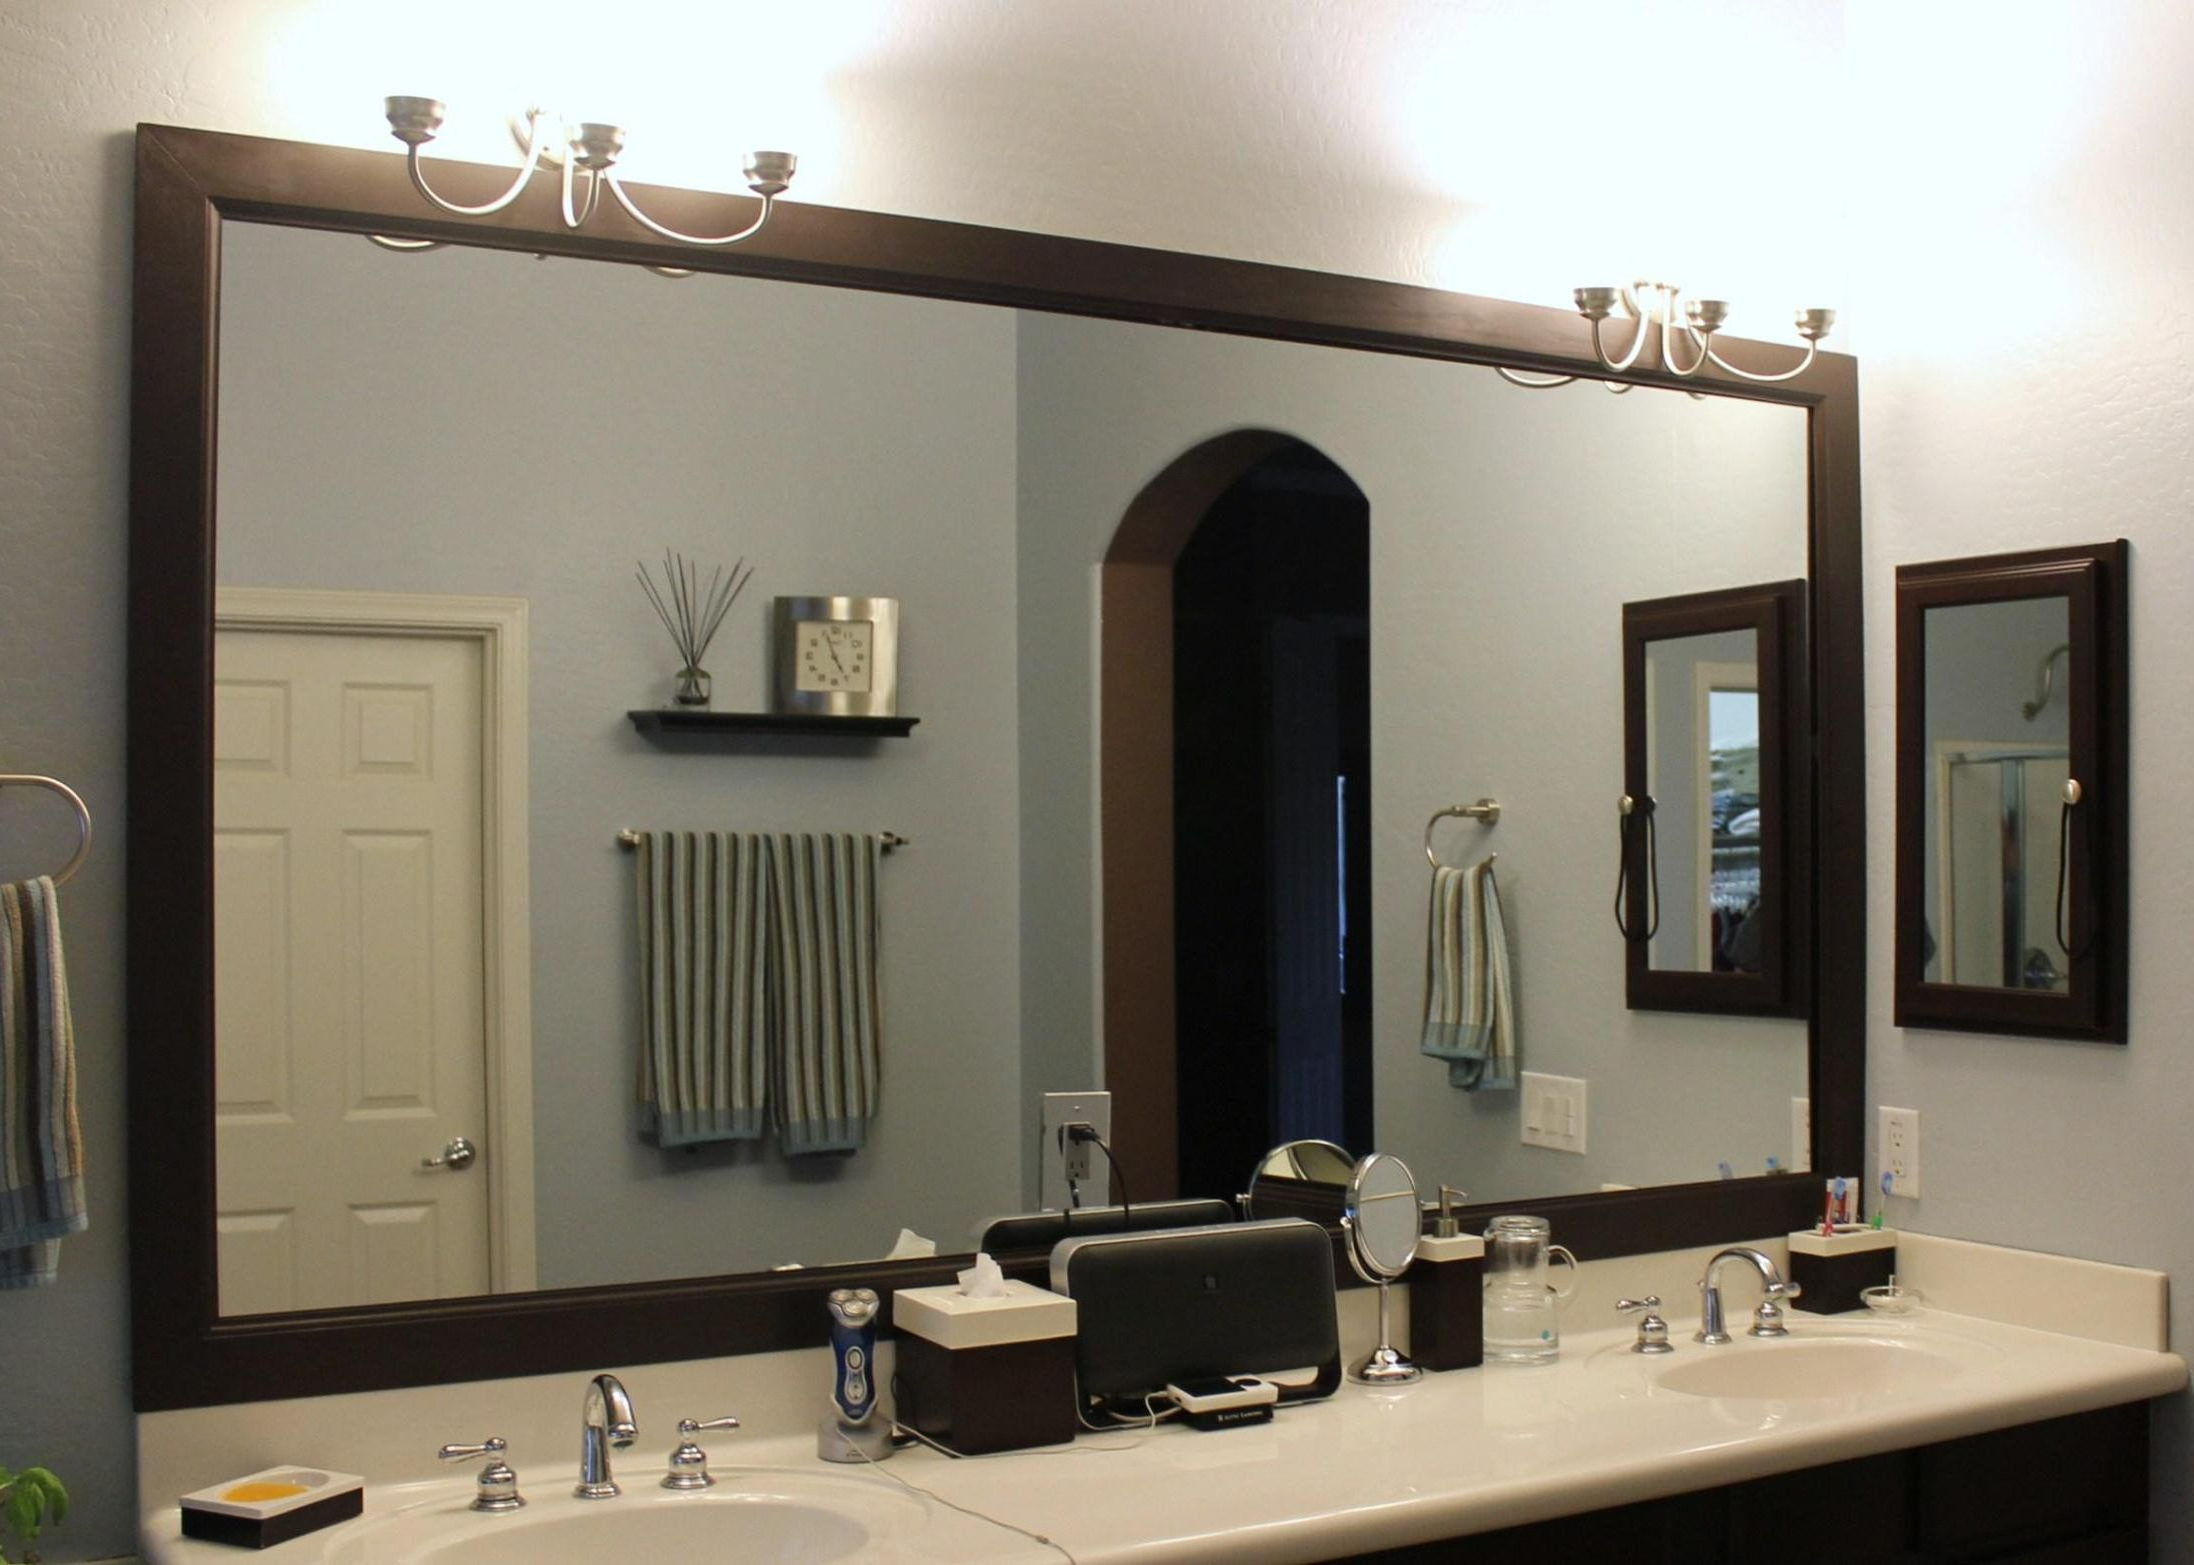 Engaging Wood Frame Ledge Round Wall Mirror Smoke Modern Elements Throughout Newest Frames For Bathroom Wall Mirrors (Gallery 5 of 20)